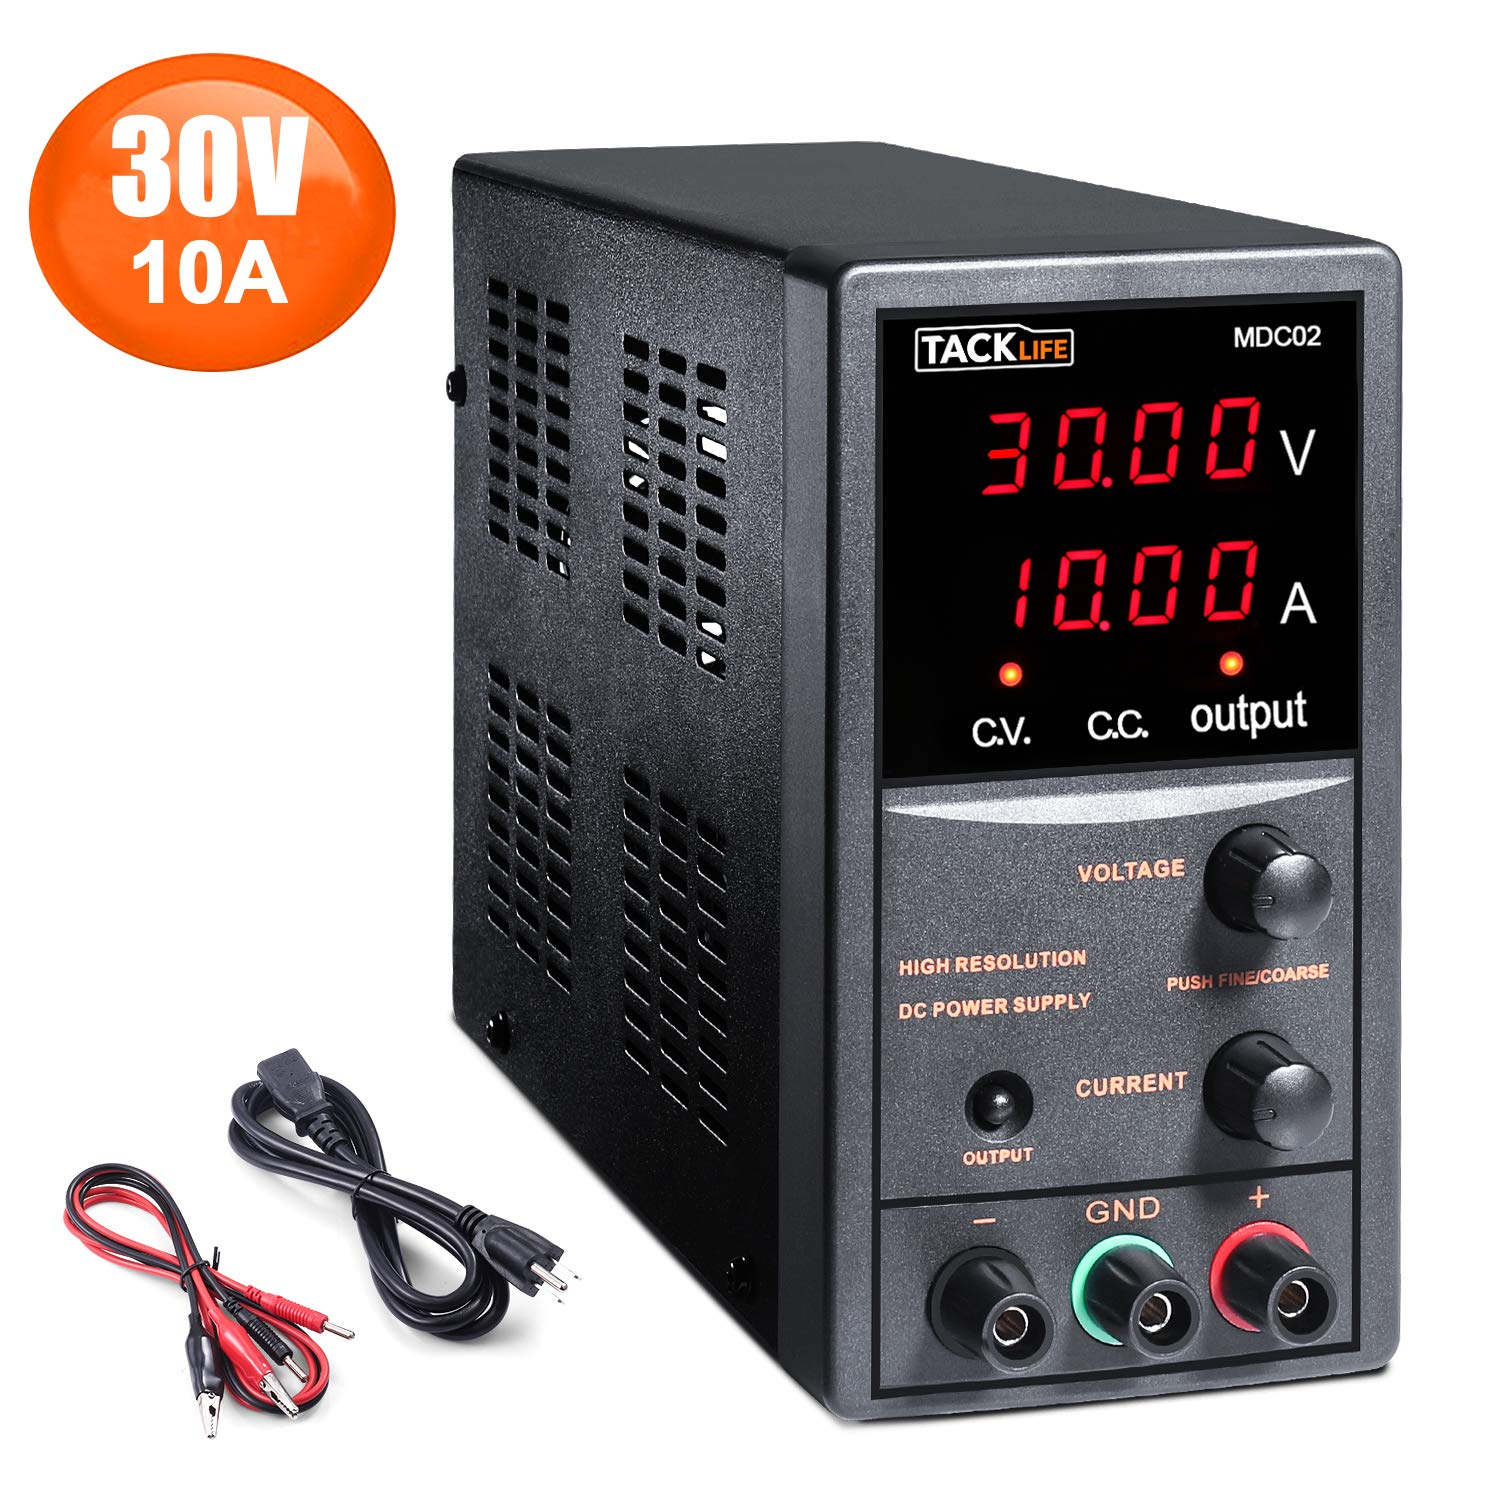 DC Power Supply Variable, Adjustable Switching Regulated Power Supply 30V 10A with Course and Fine Adjustments, 4-Digits Display, Data Hold - 115CM Alligator Leads Included MDC02